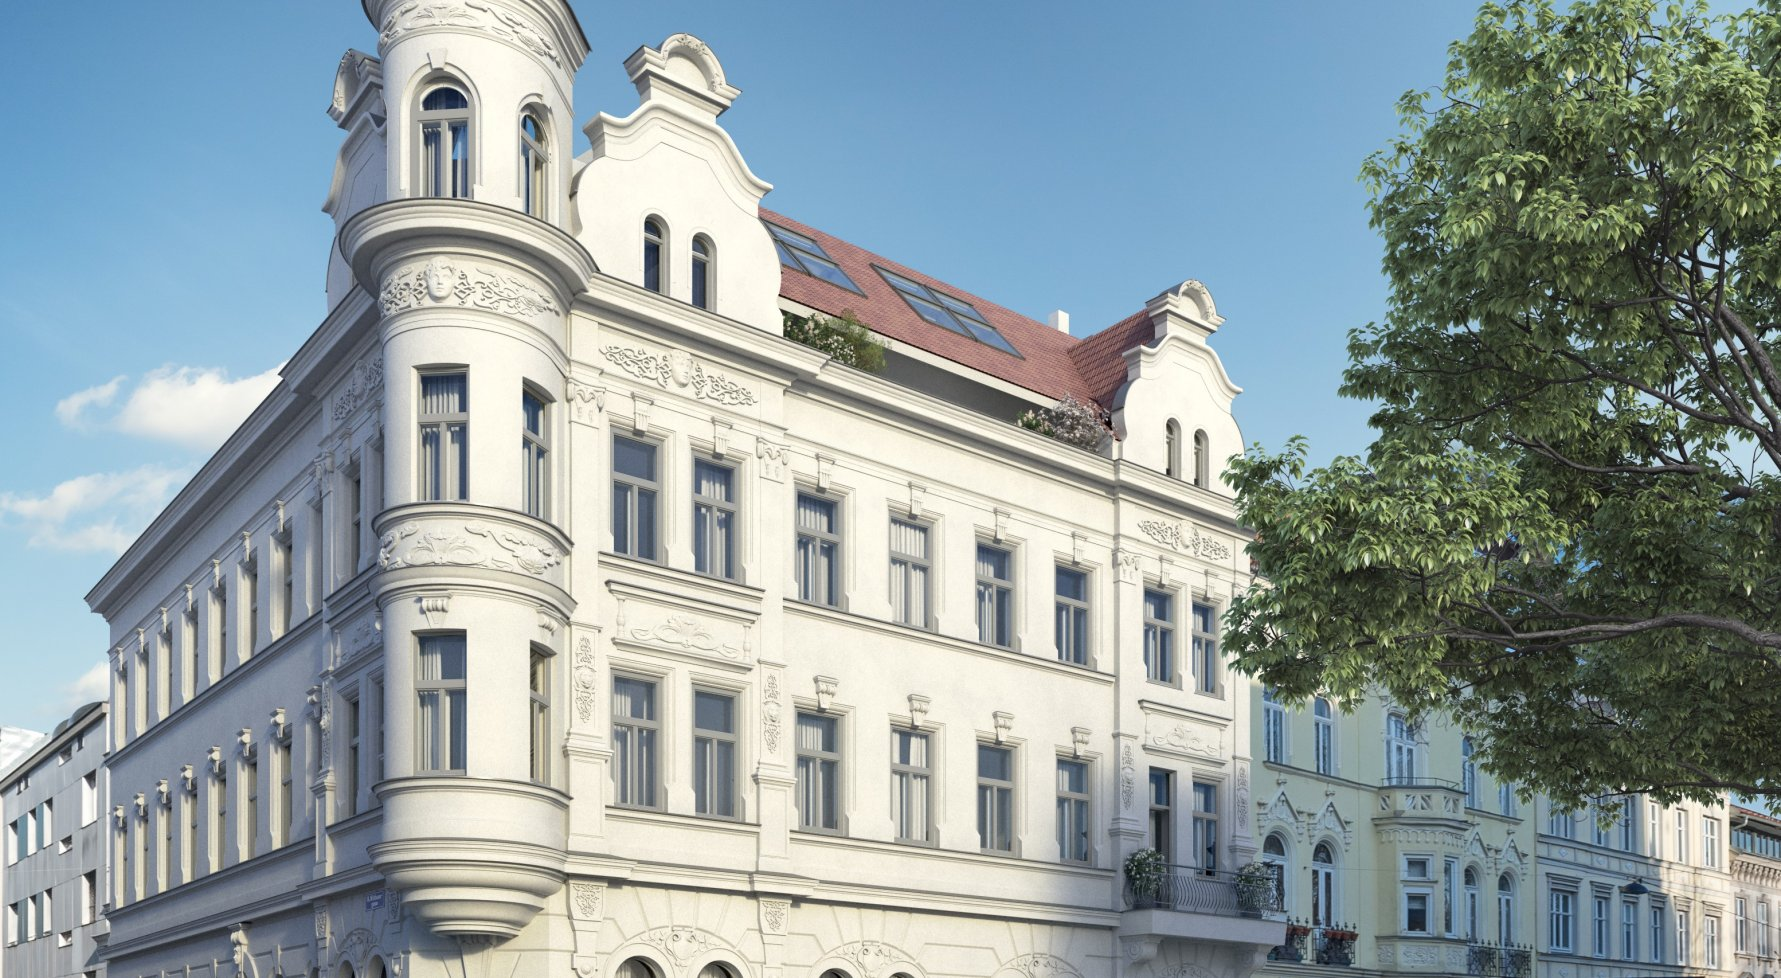 Property in 1180 Wien, 18. Bezirk: Top floor apartment in a renovated Wilhelminian style house in the best location - picture 1